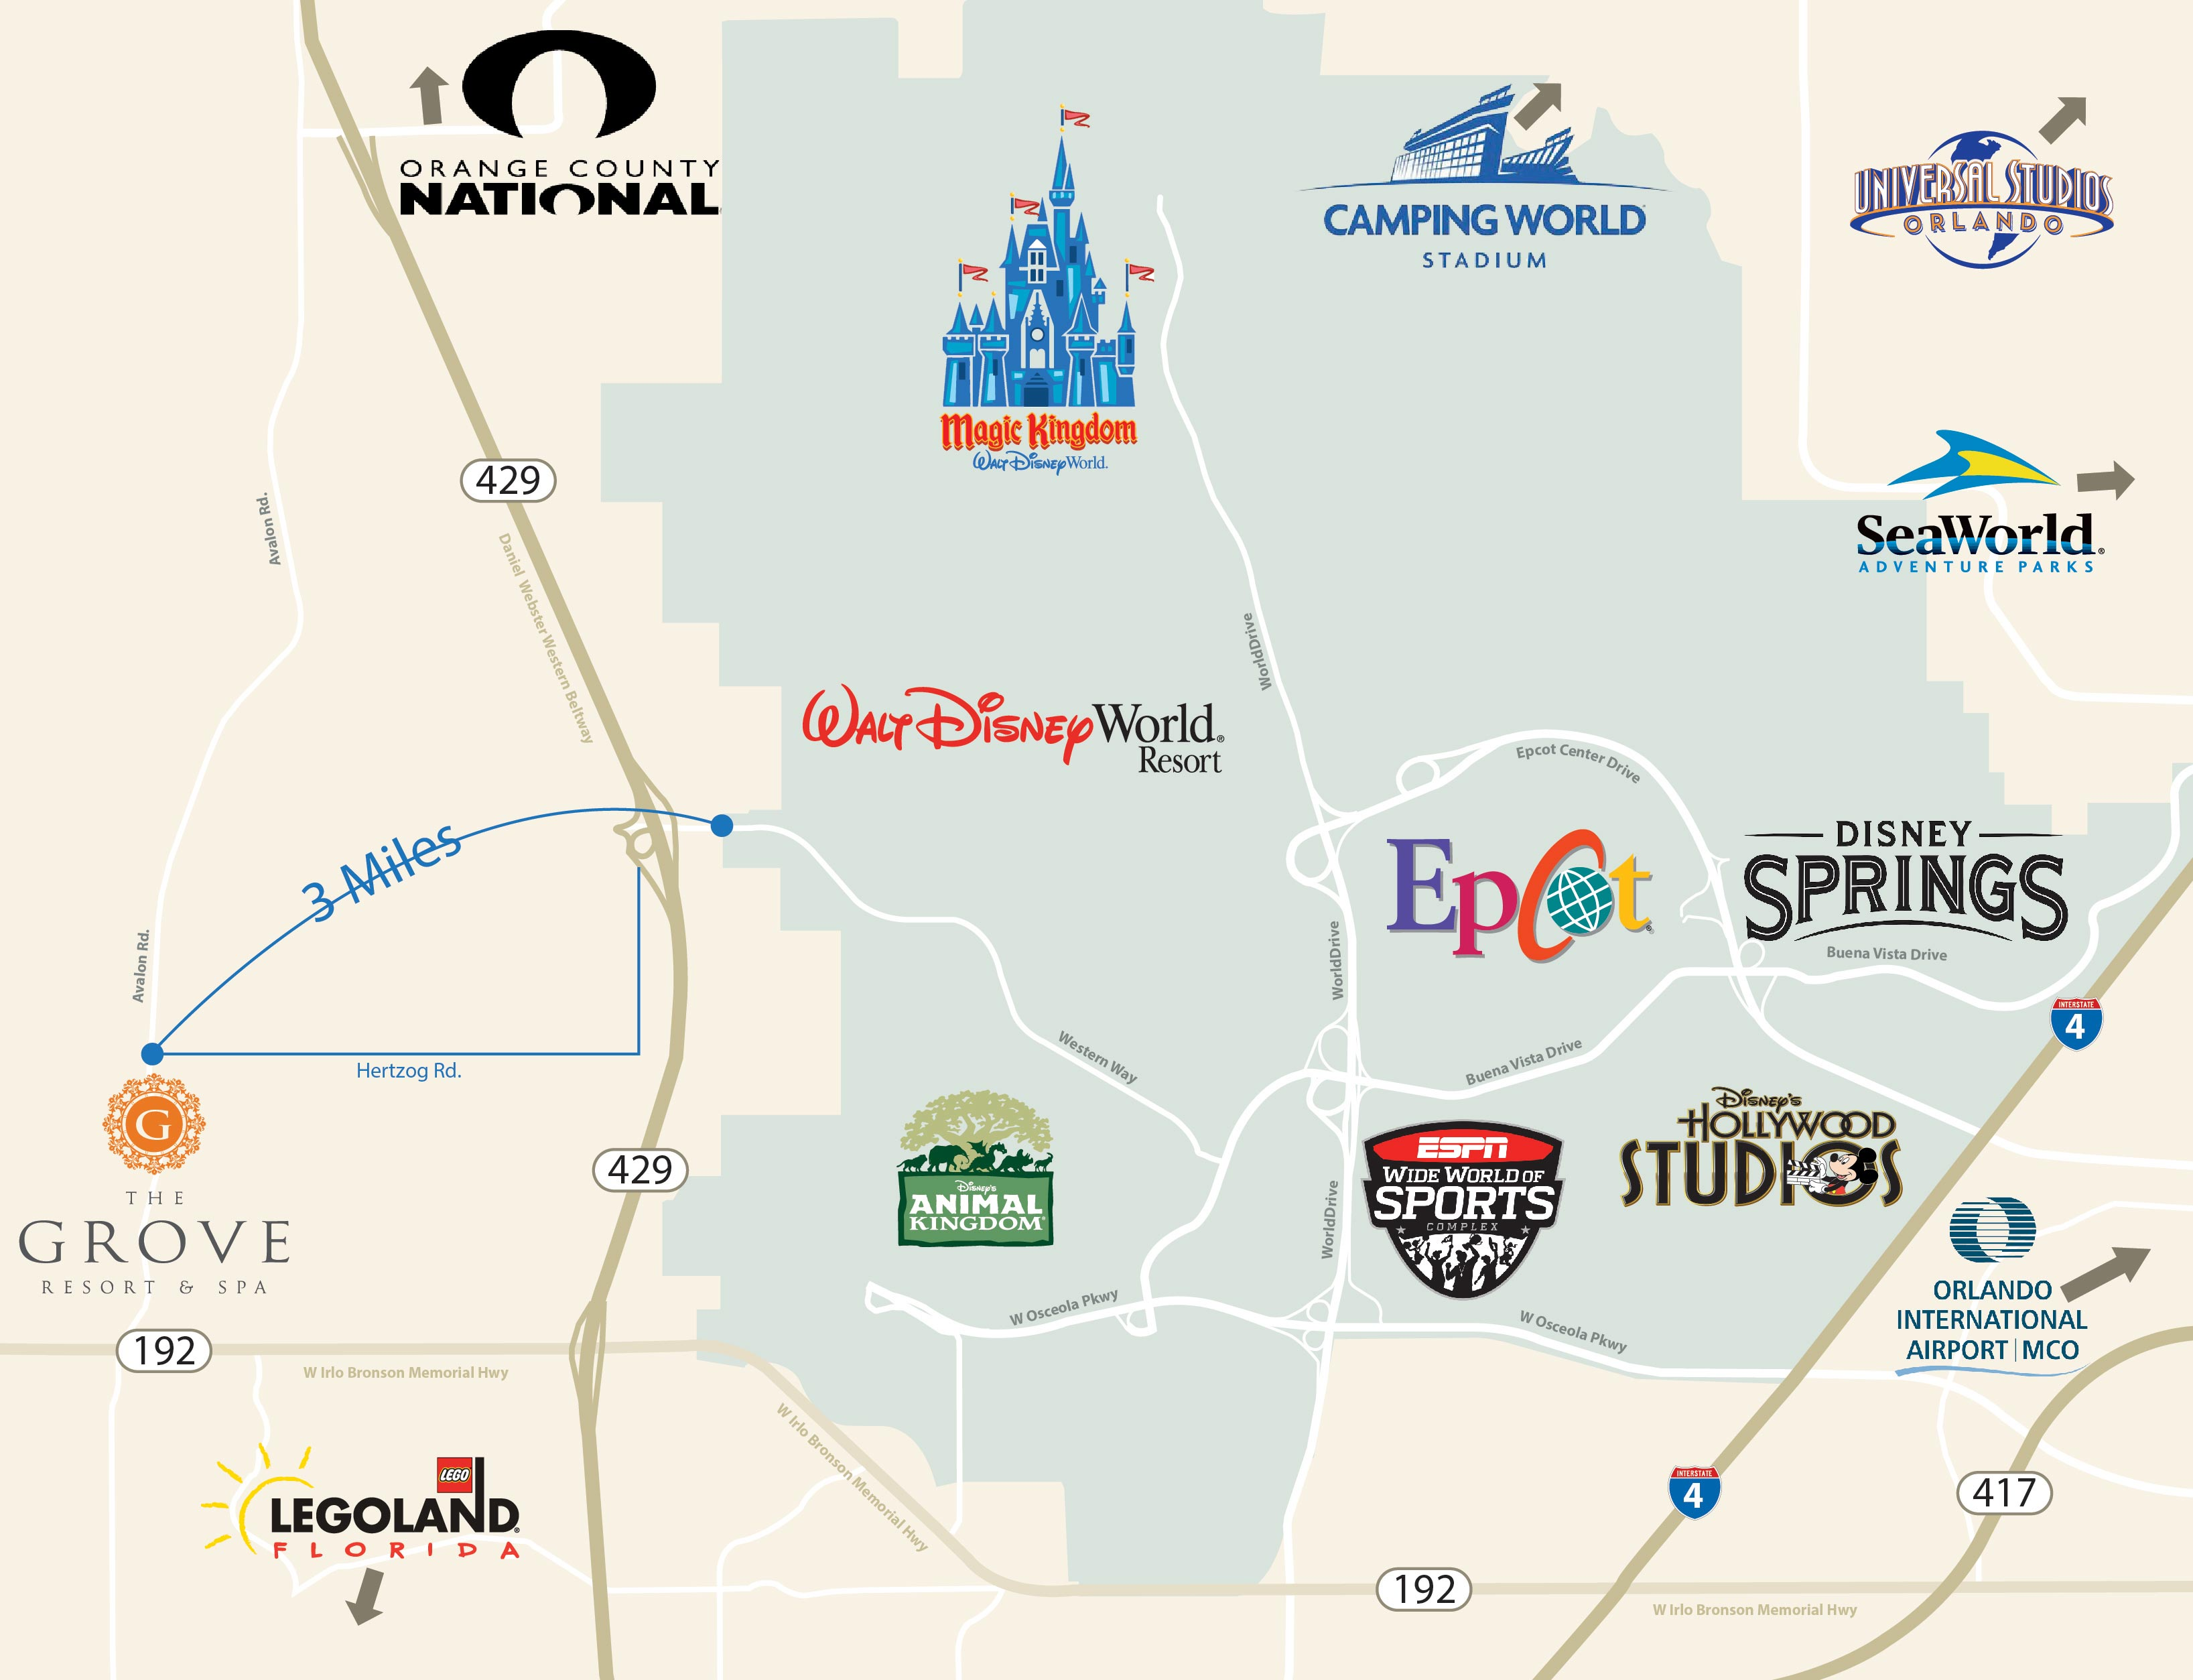 The Grove Resort & Spa Offers Up Free Tickets To Walt Disney World on